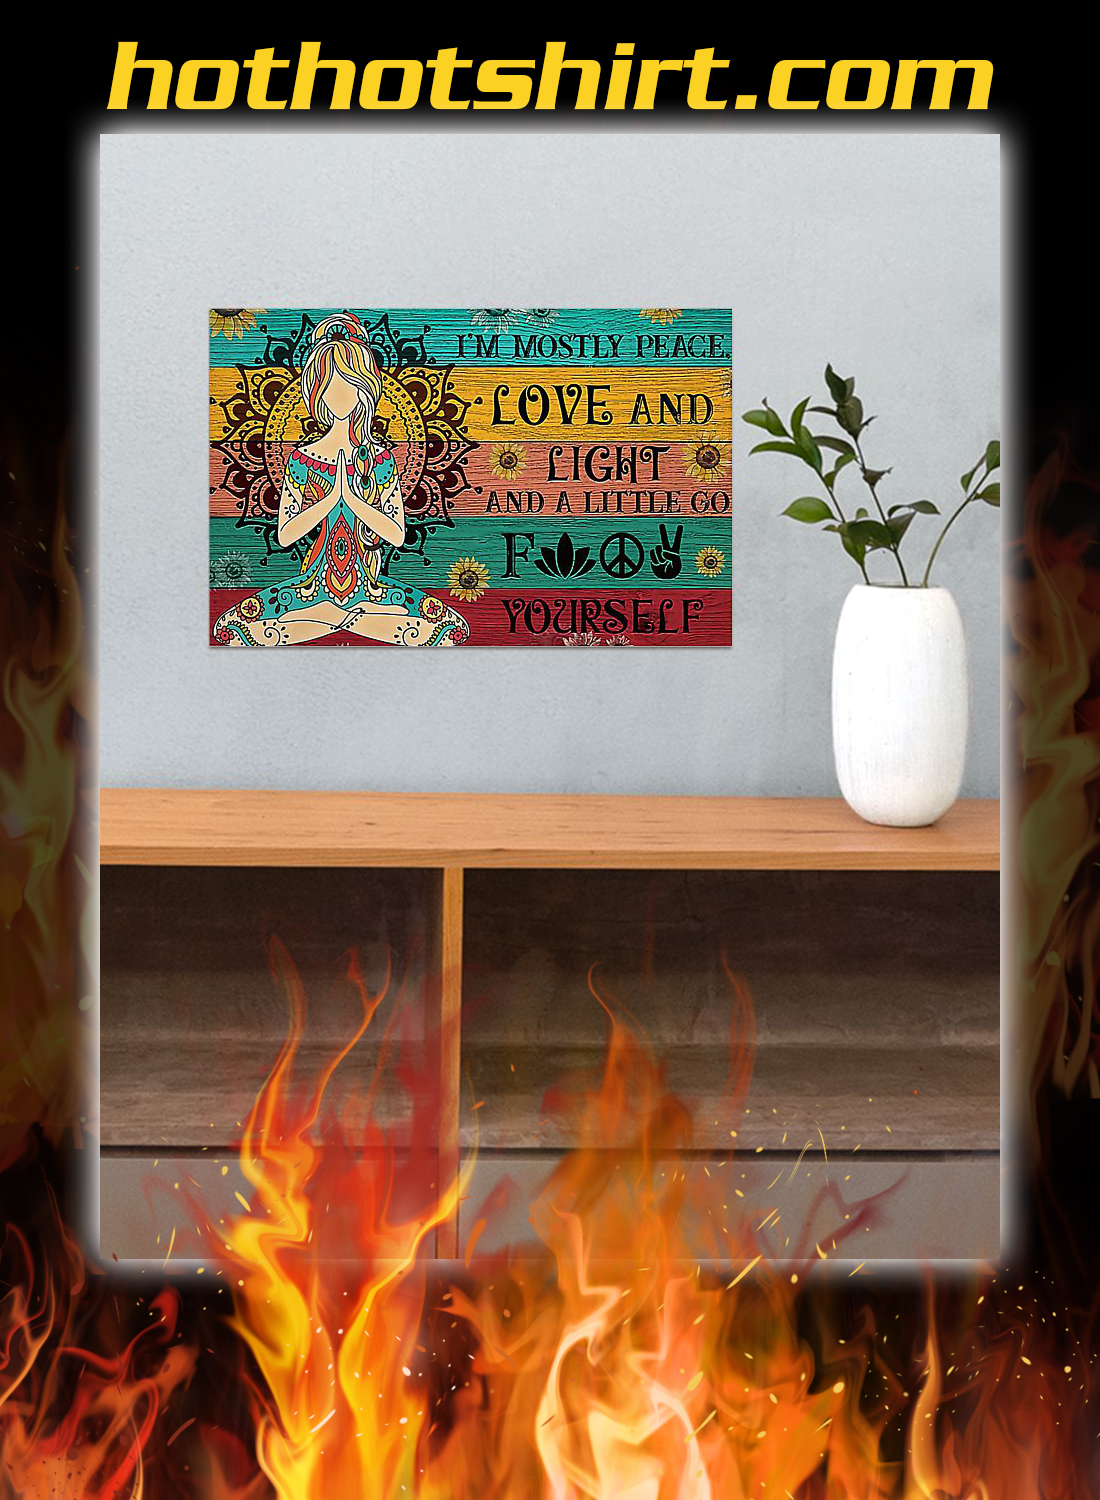 Yoga i'm mostly peace love and light poster 2